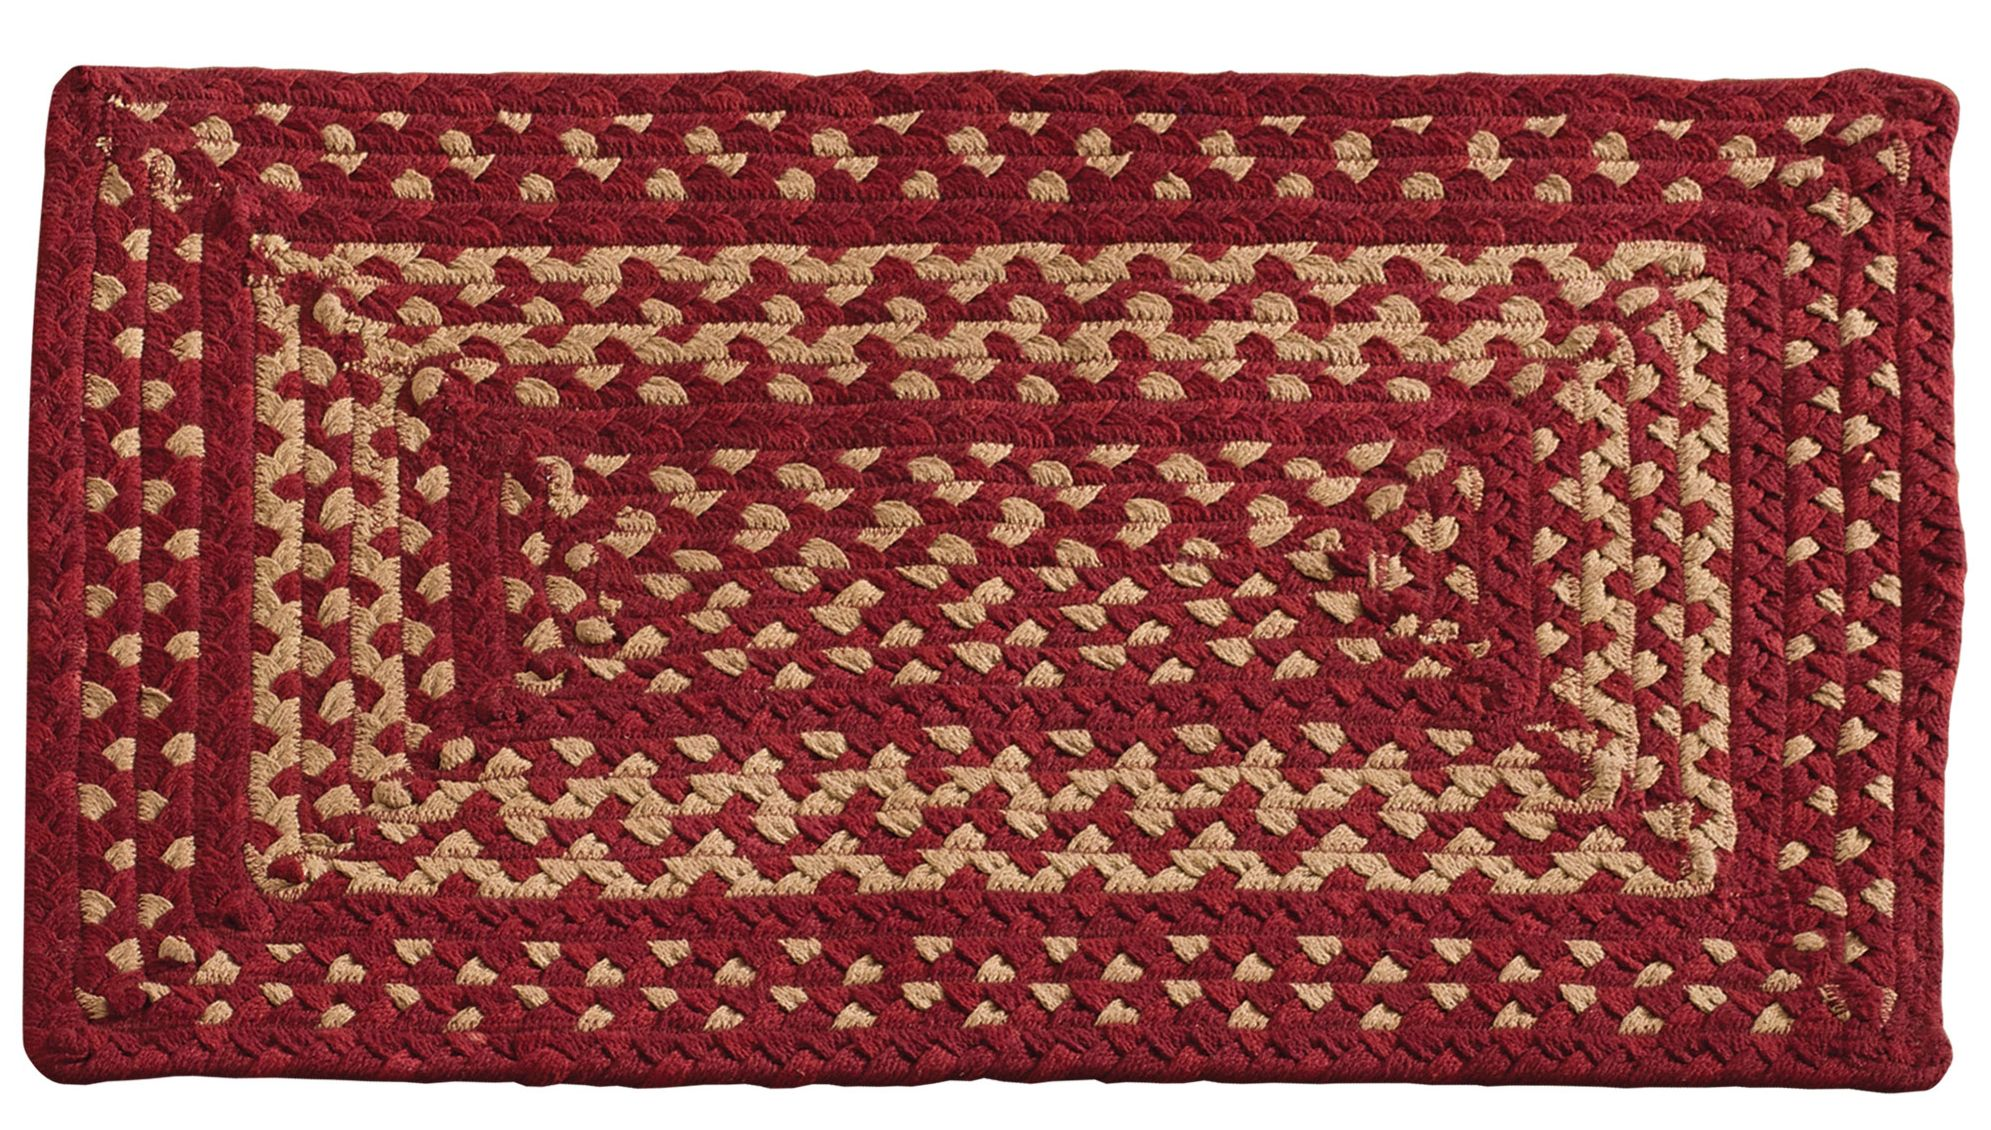 PKD-325-439-Winesap-Braided-Rectangle-Rug-8x10-LRG